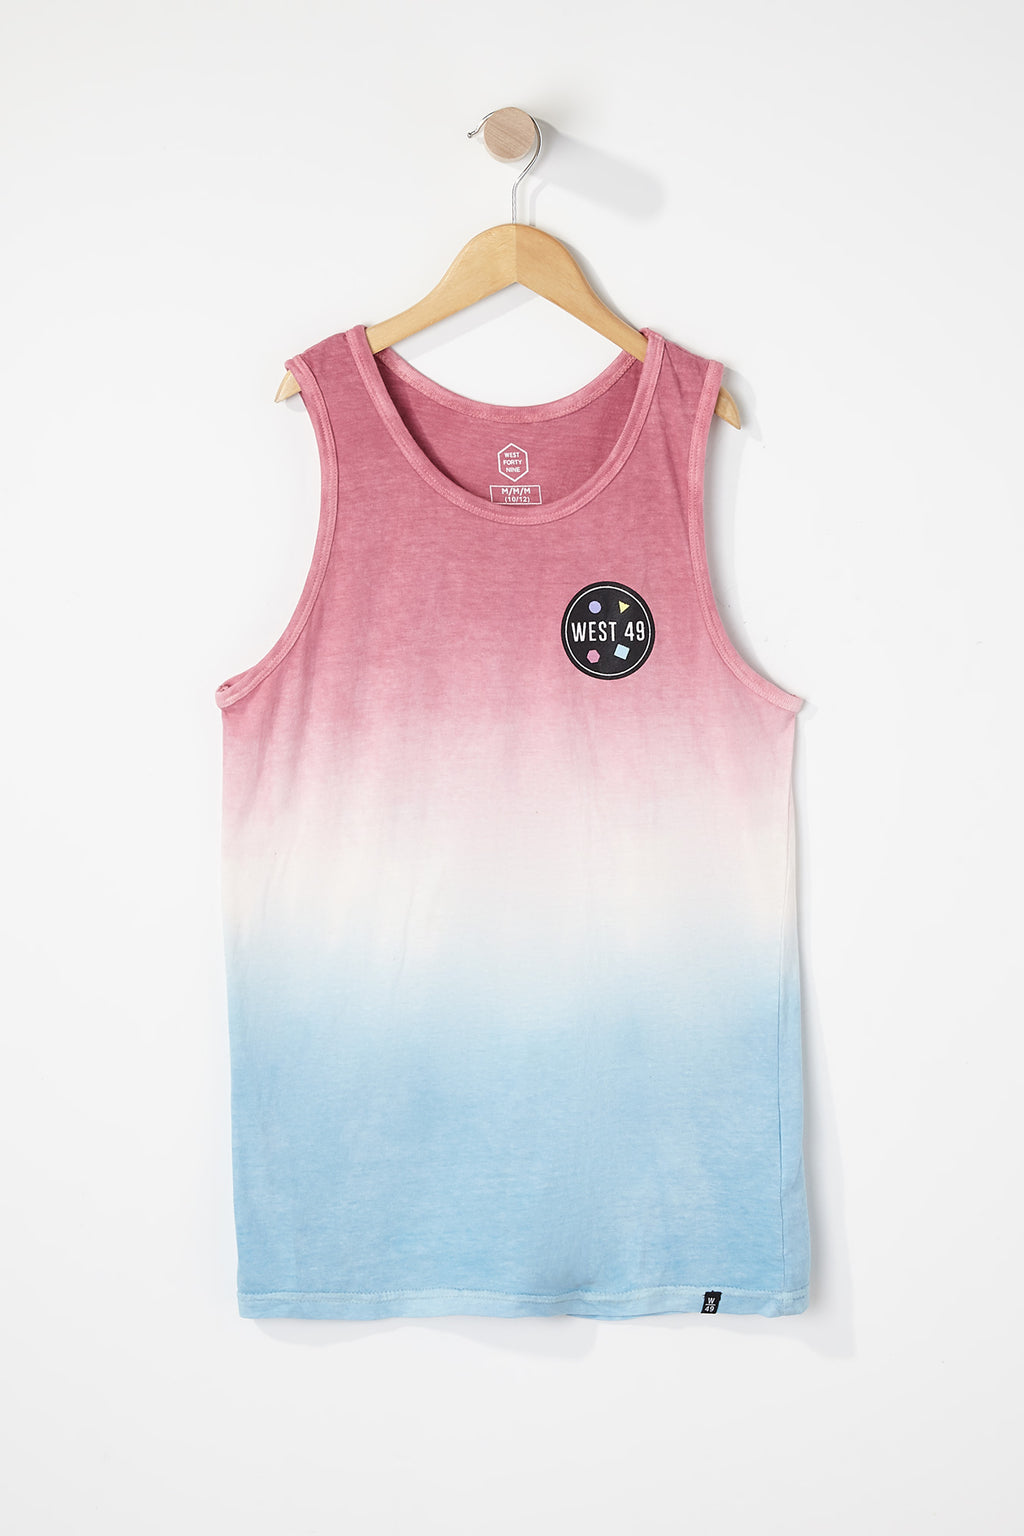 West49 Boys Dip Dye Tank Top